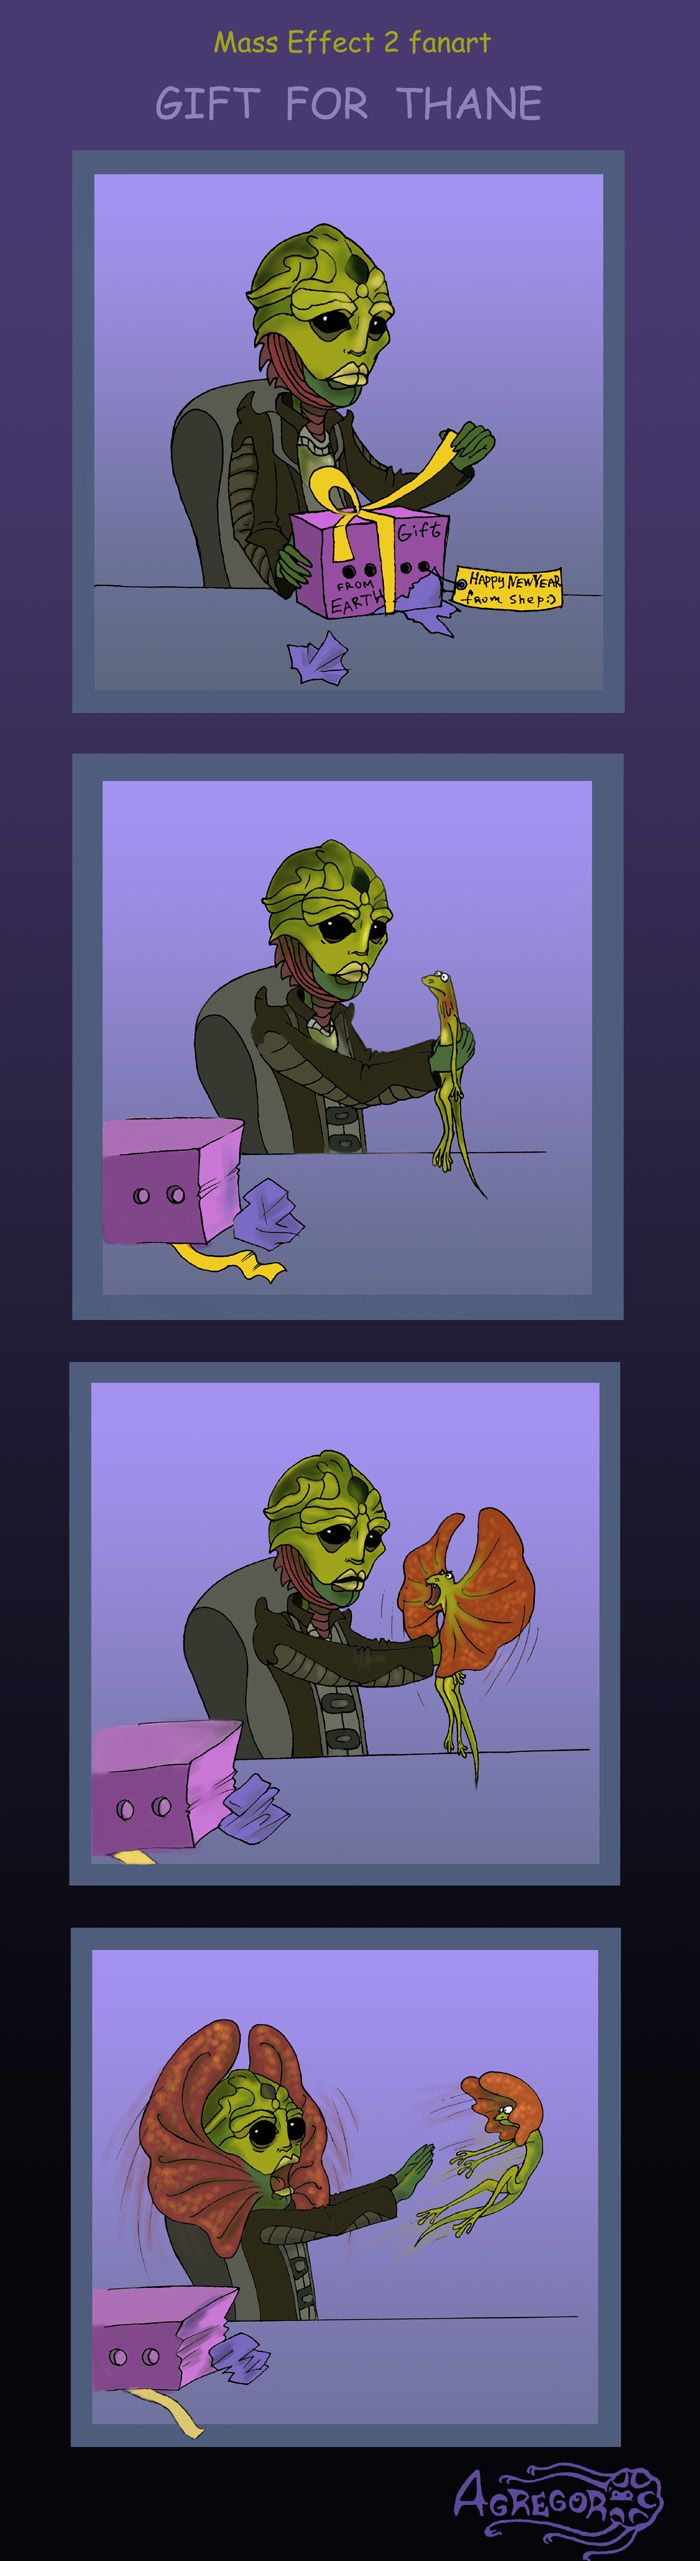 Mass Effect 2, Gift for Thane by *Agregor on deviantART this made me laugh